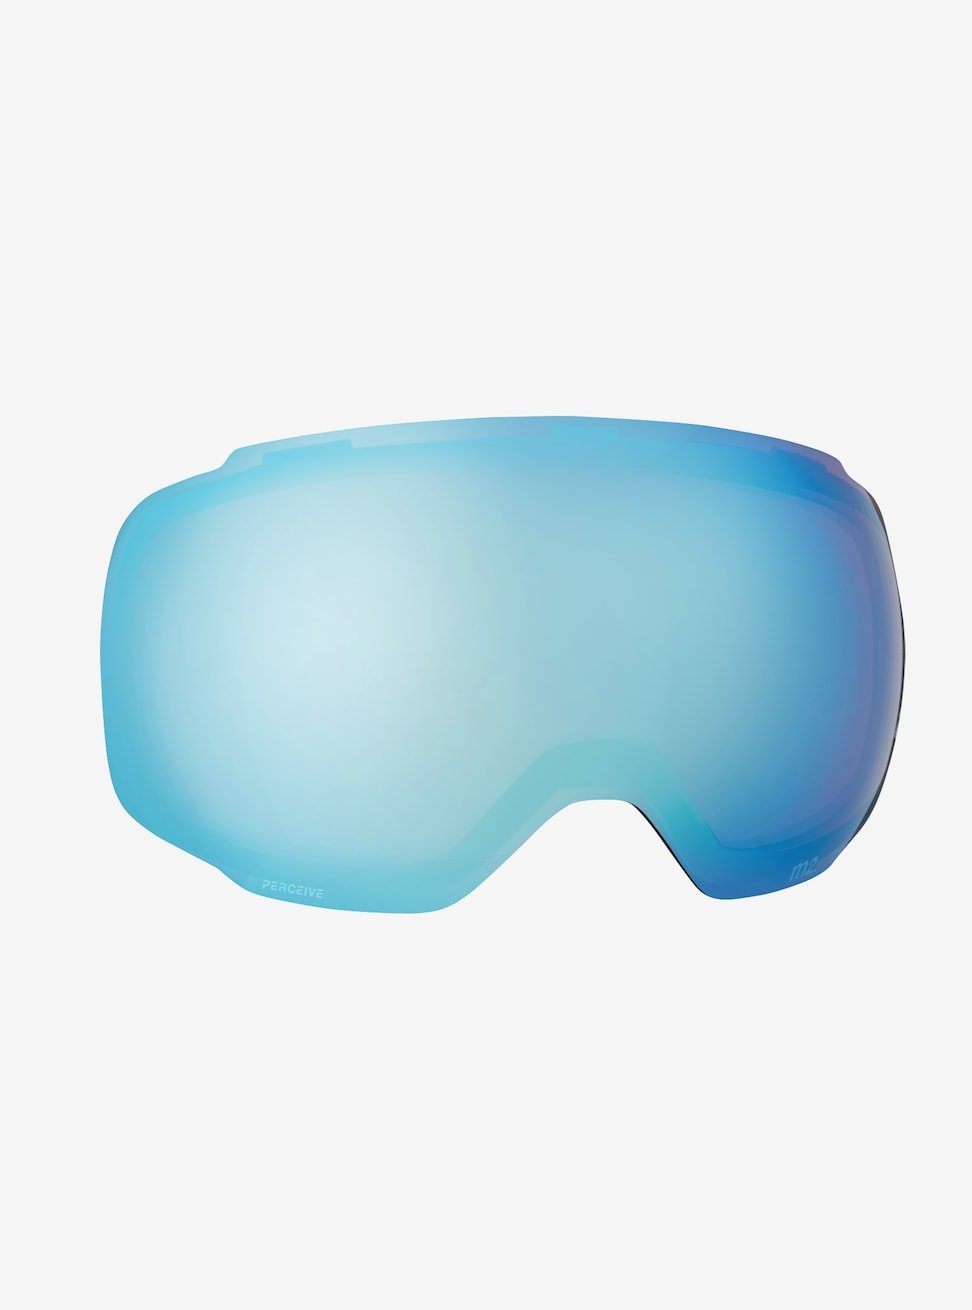 Anon M2 Goggle Lens (Multiple Color Options)